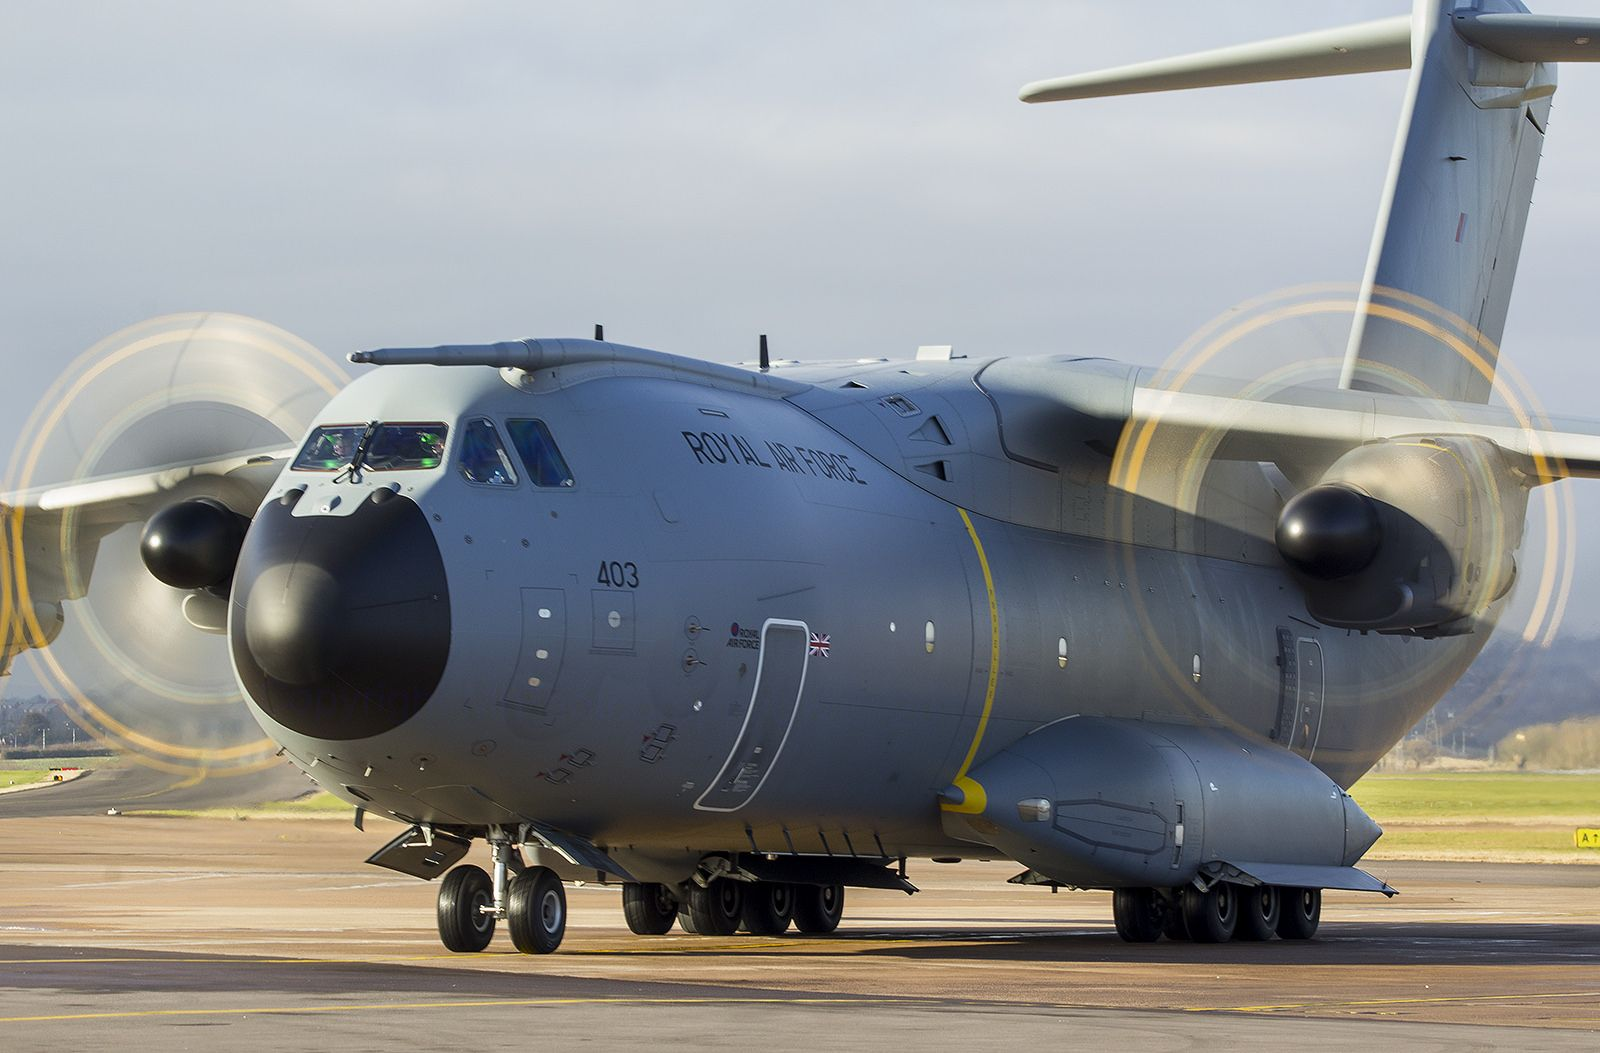 ZM403 Royal Air Force Airbus A400M-180 @ Exeter Airport